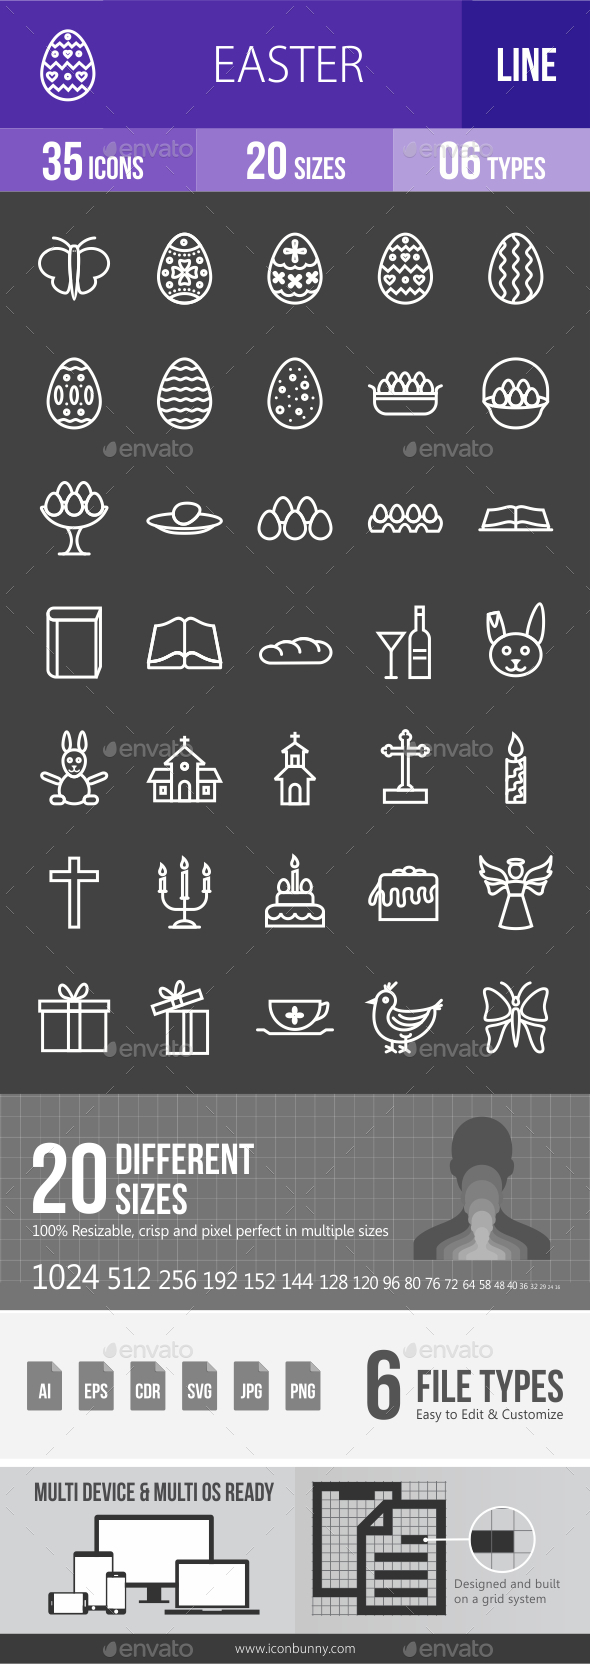 Easter Line Inverted Icons